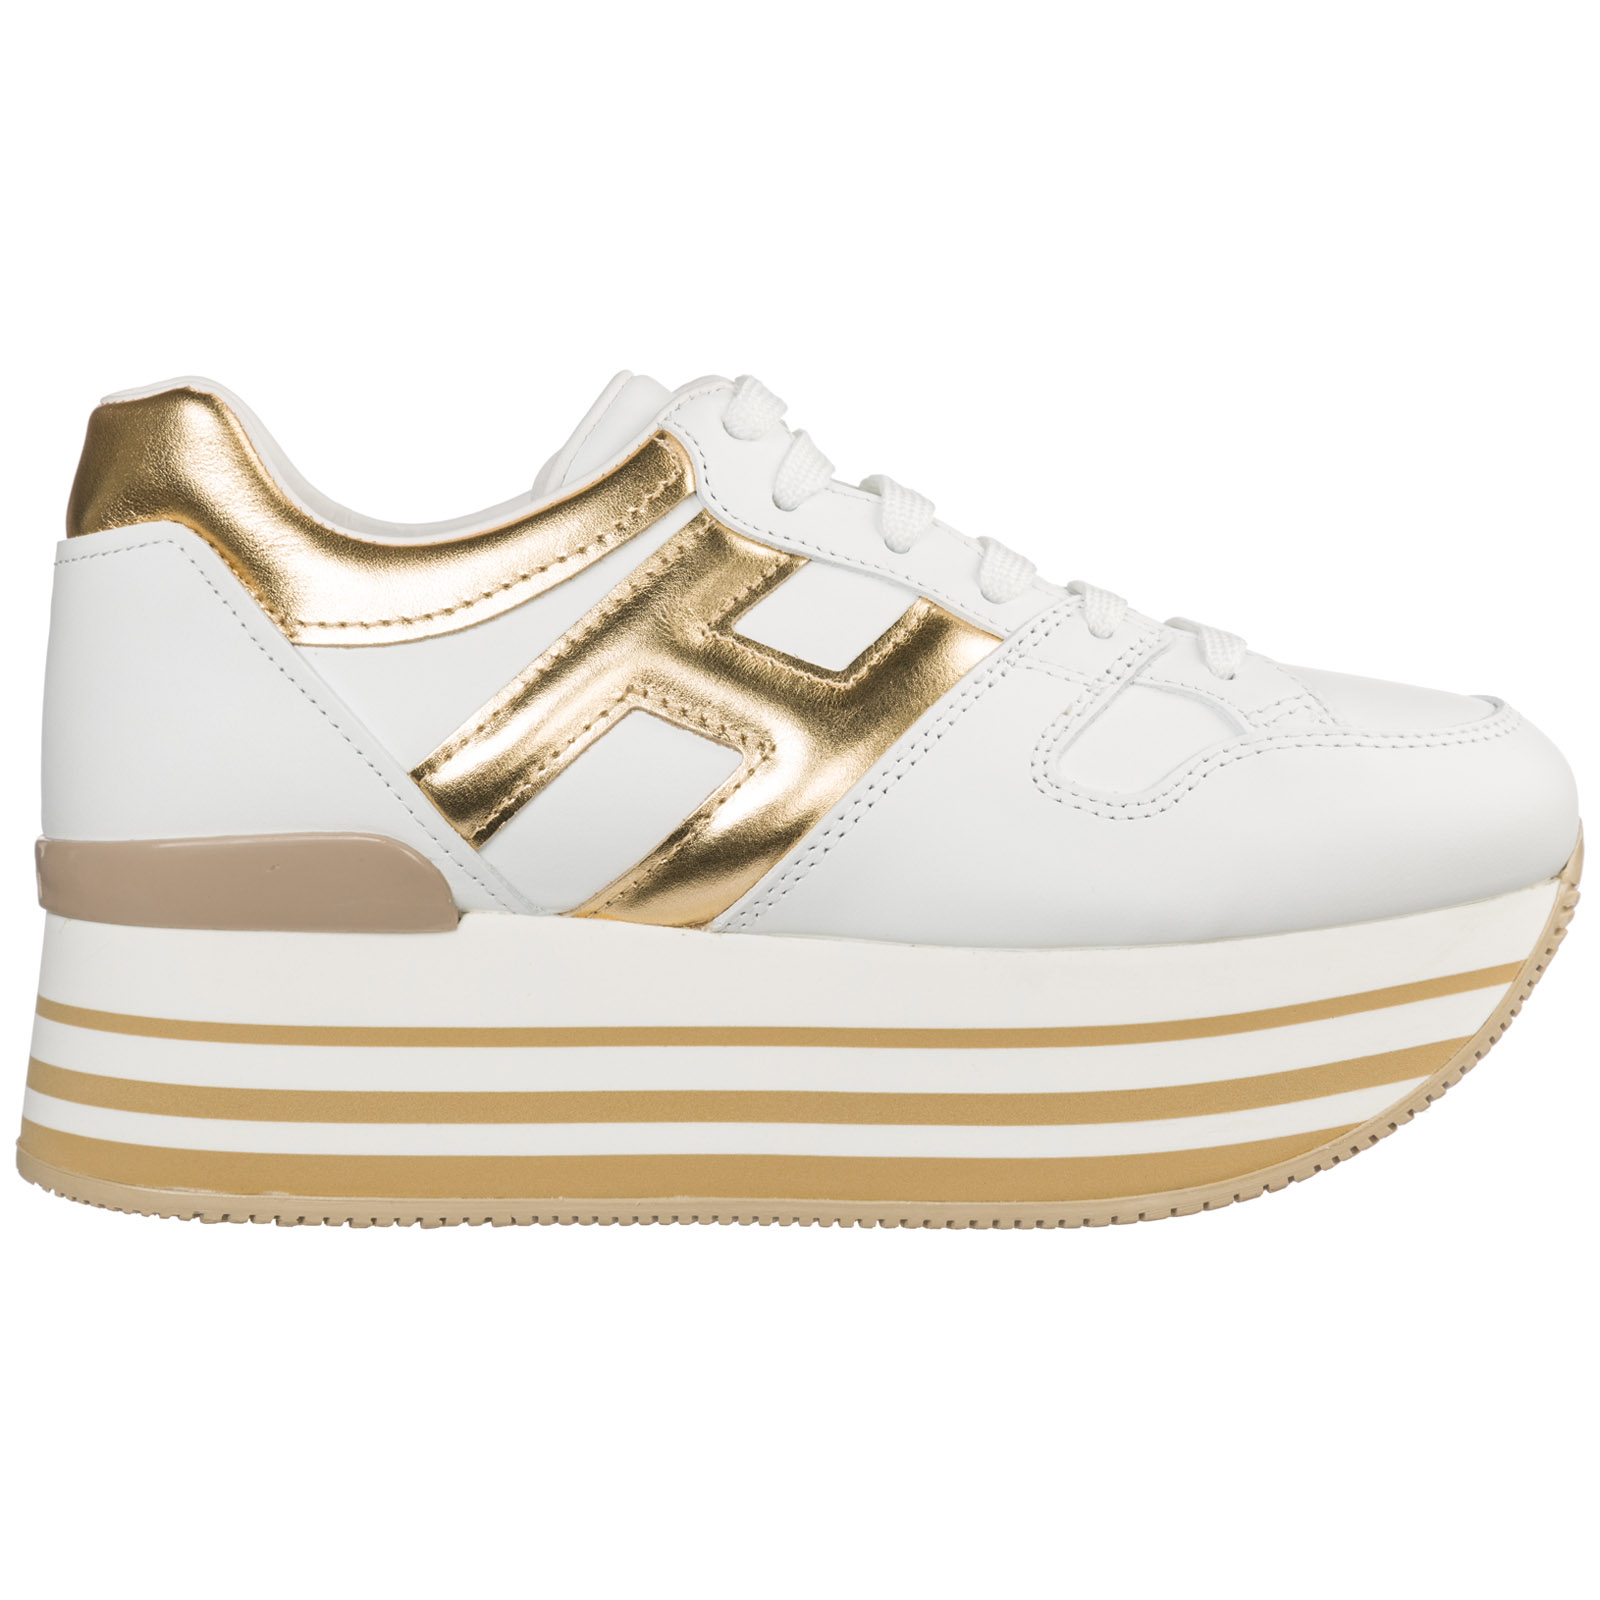 Hogan Women's Shoes Leather Trainers Sneakers Maxi H222 In White ...